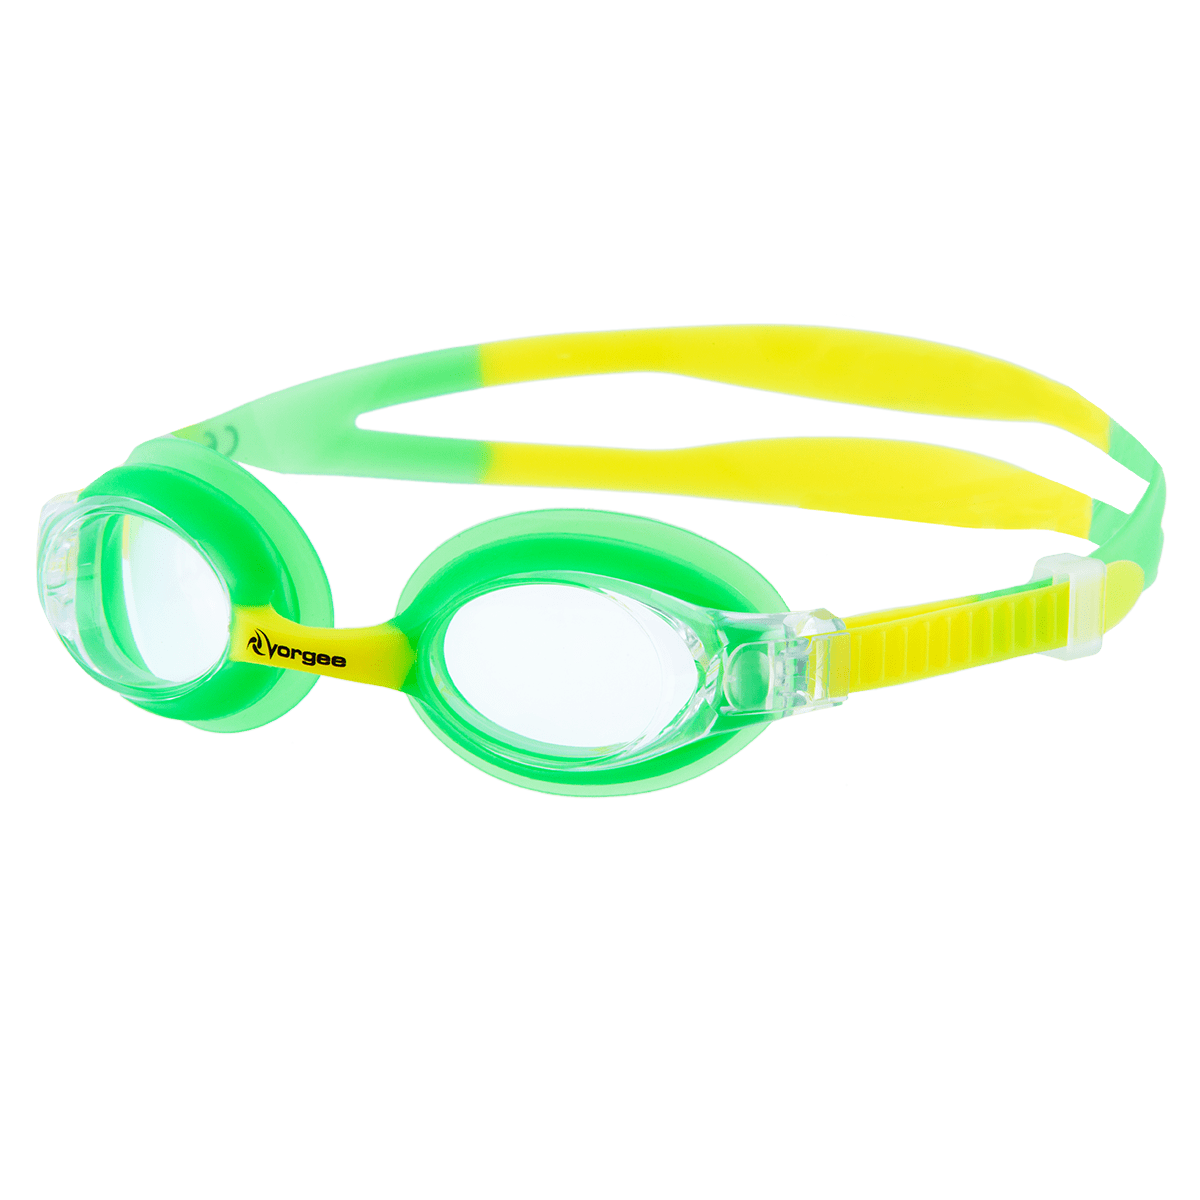 Kids swim goggle Vorgee Dolphin - Clear Lens (2 to 8 years)